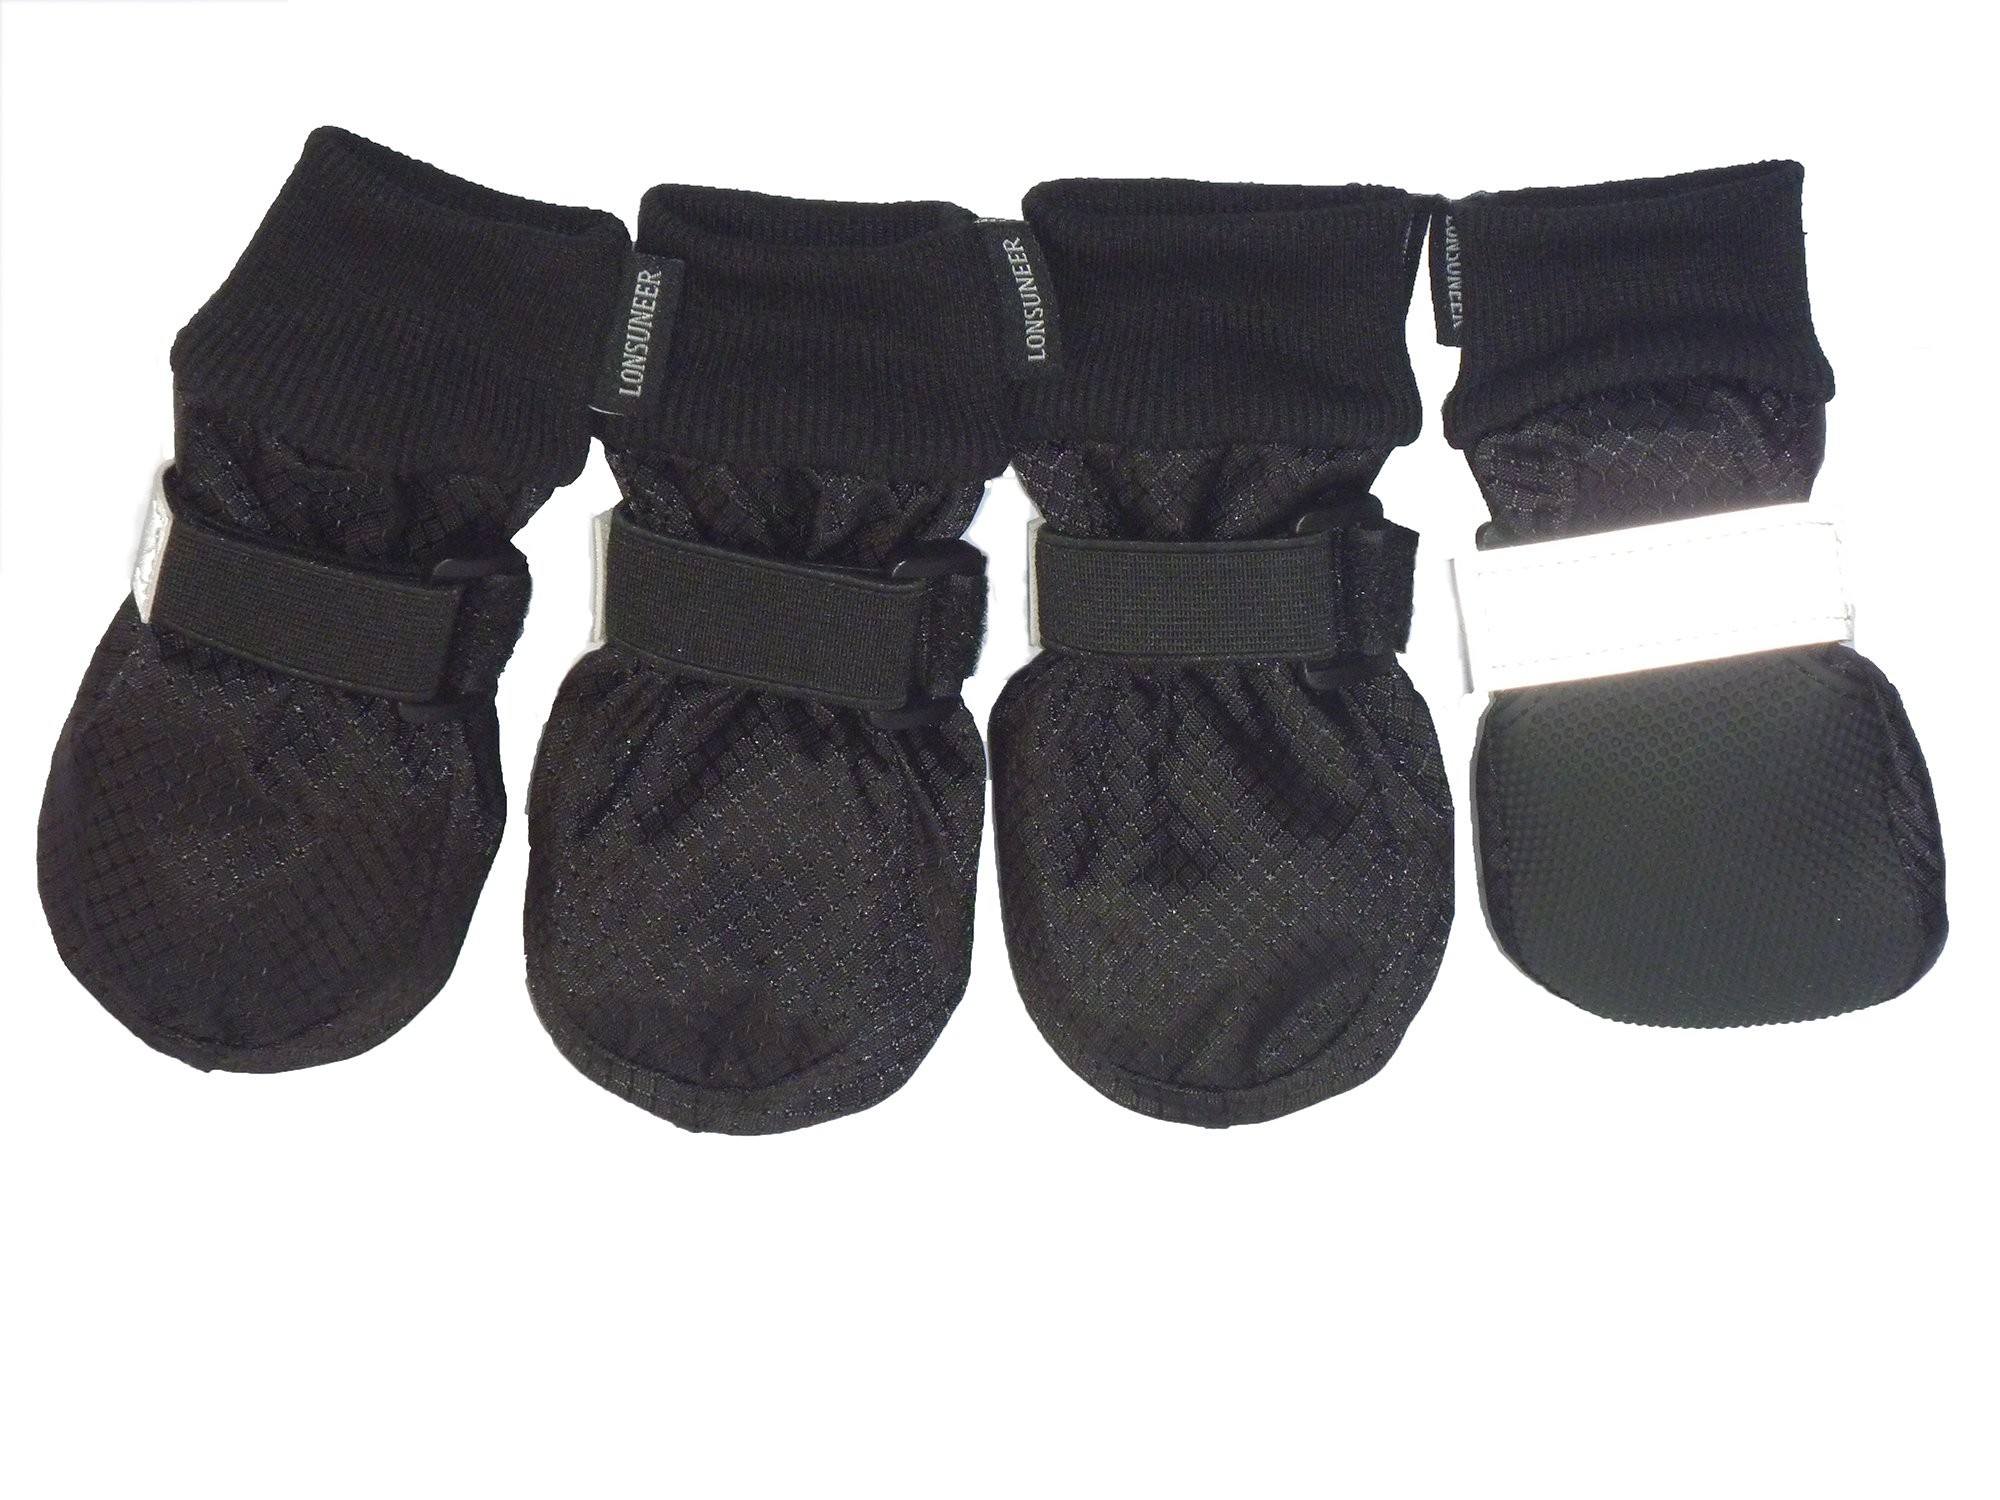 LONSUNEER Paw Protector Dog Boots Soft Sole Nonslip and Safe Reflective Set of 4 Color Black Size X-Small by LONSUNEER